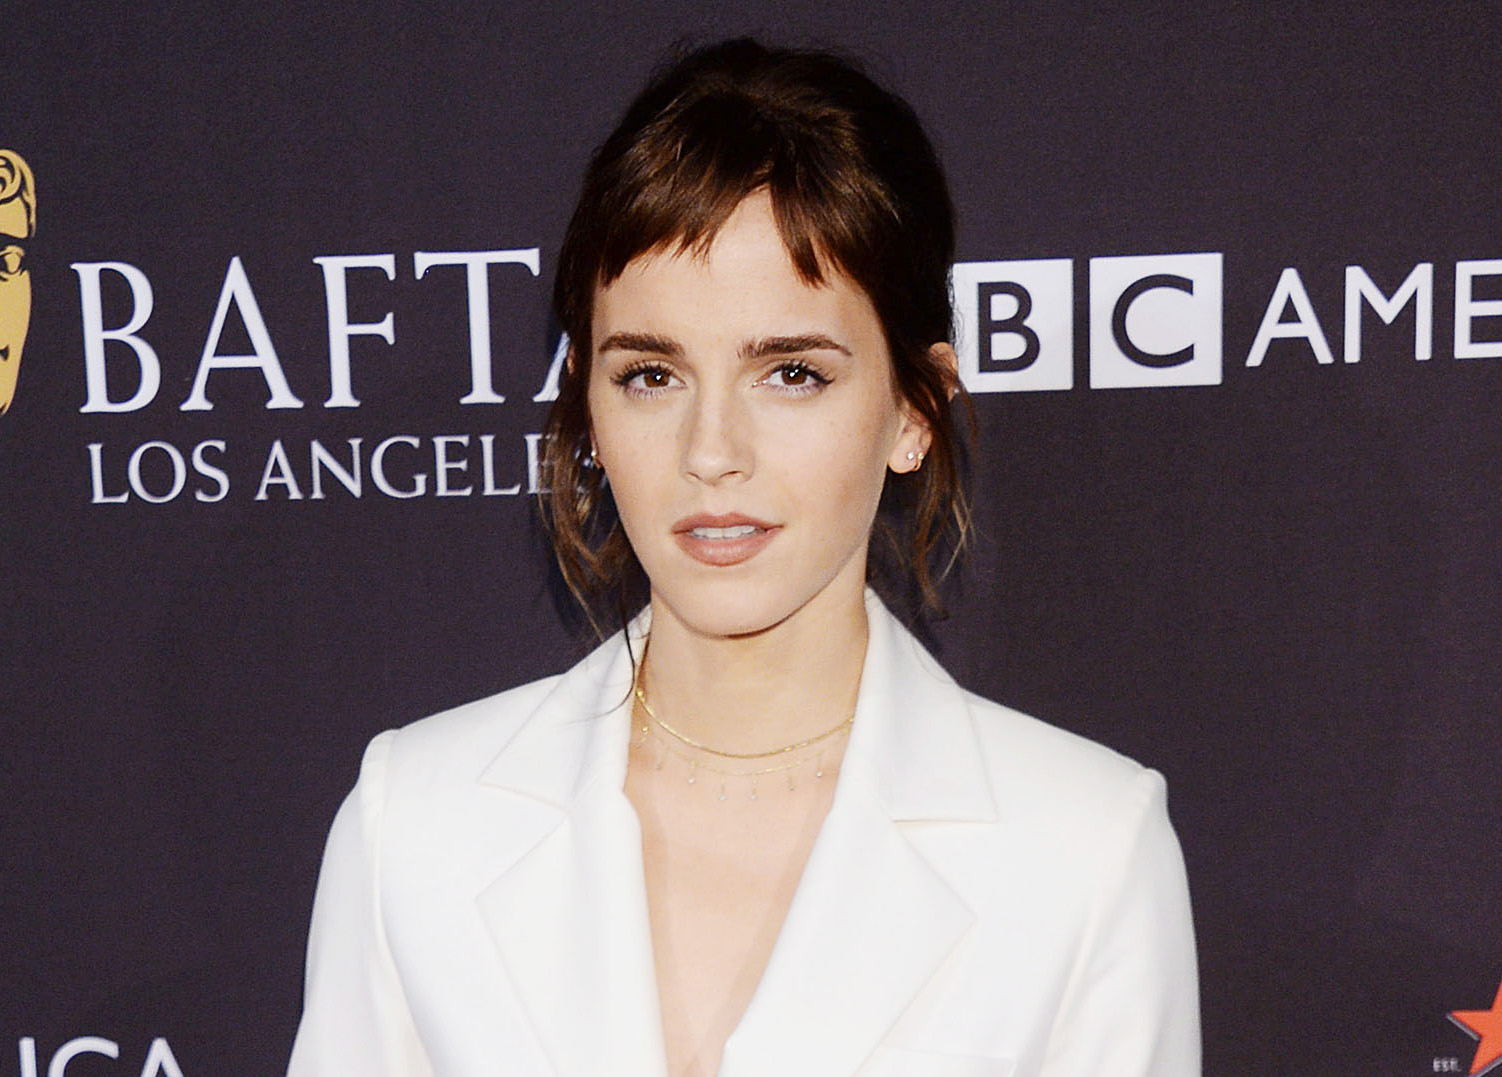 Emma Watson Donates £1M to UK-Based 'Justice and Equality Fund' as Nearly 200 Actresses Expand the Time's Up Movement